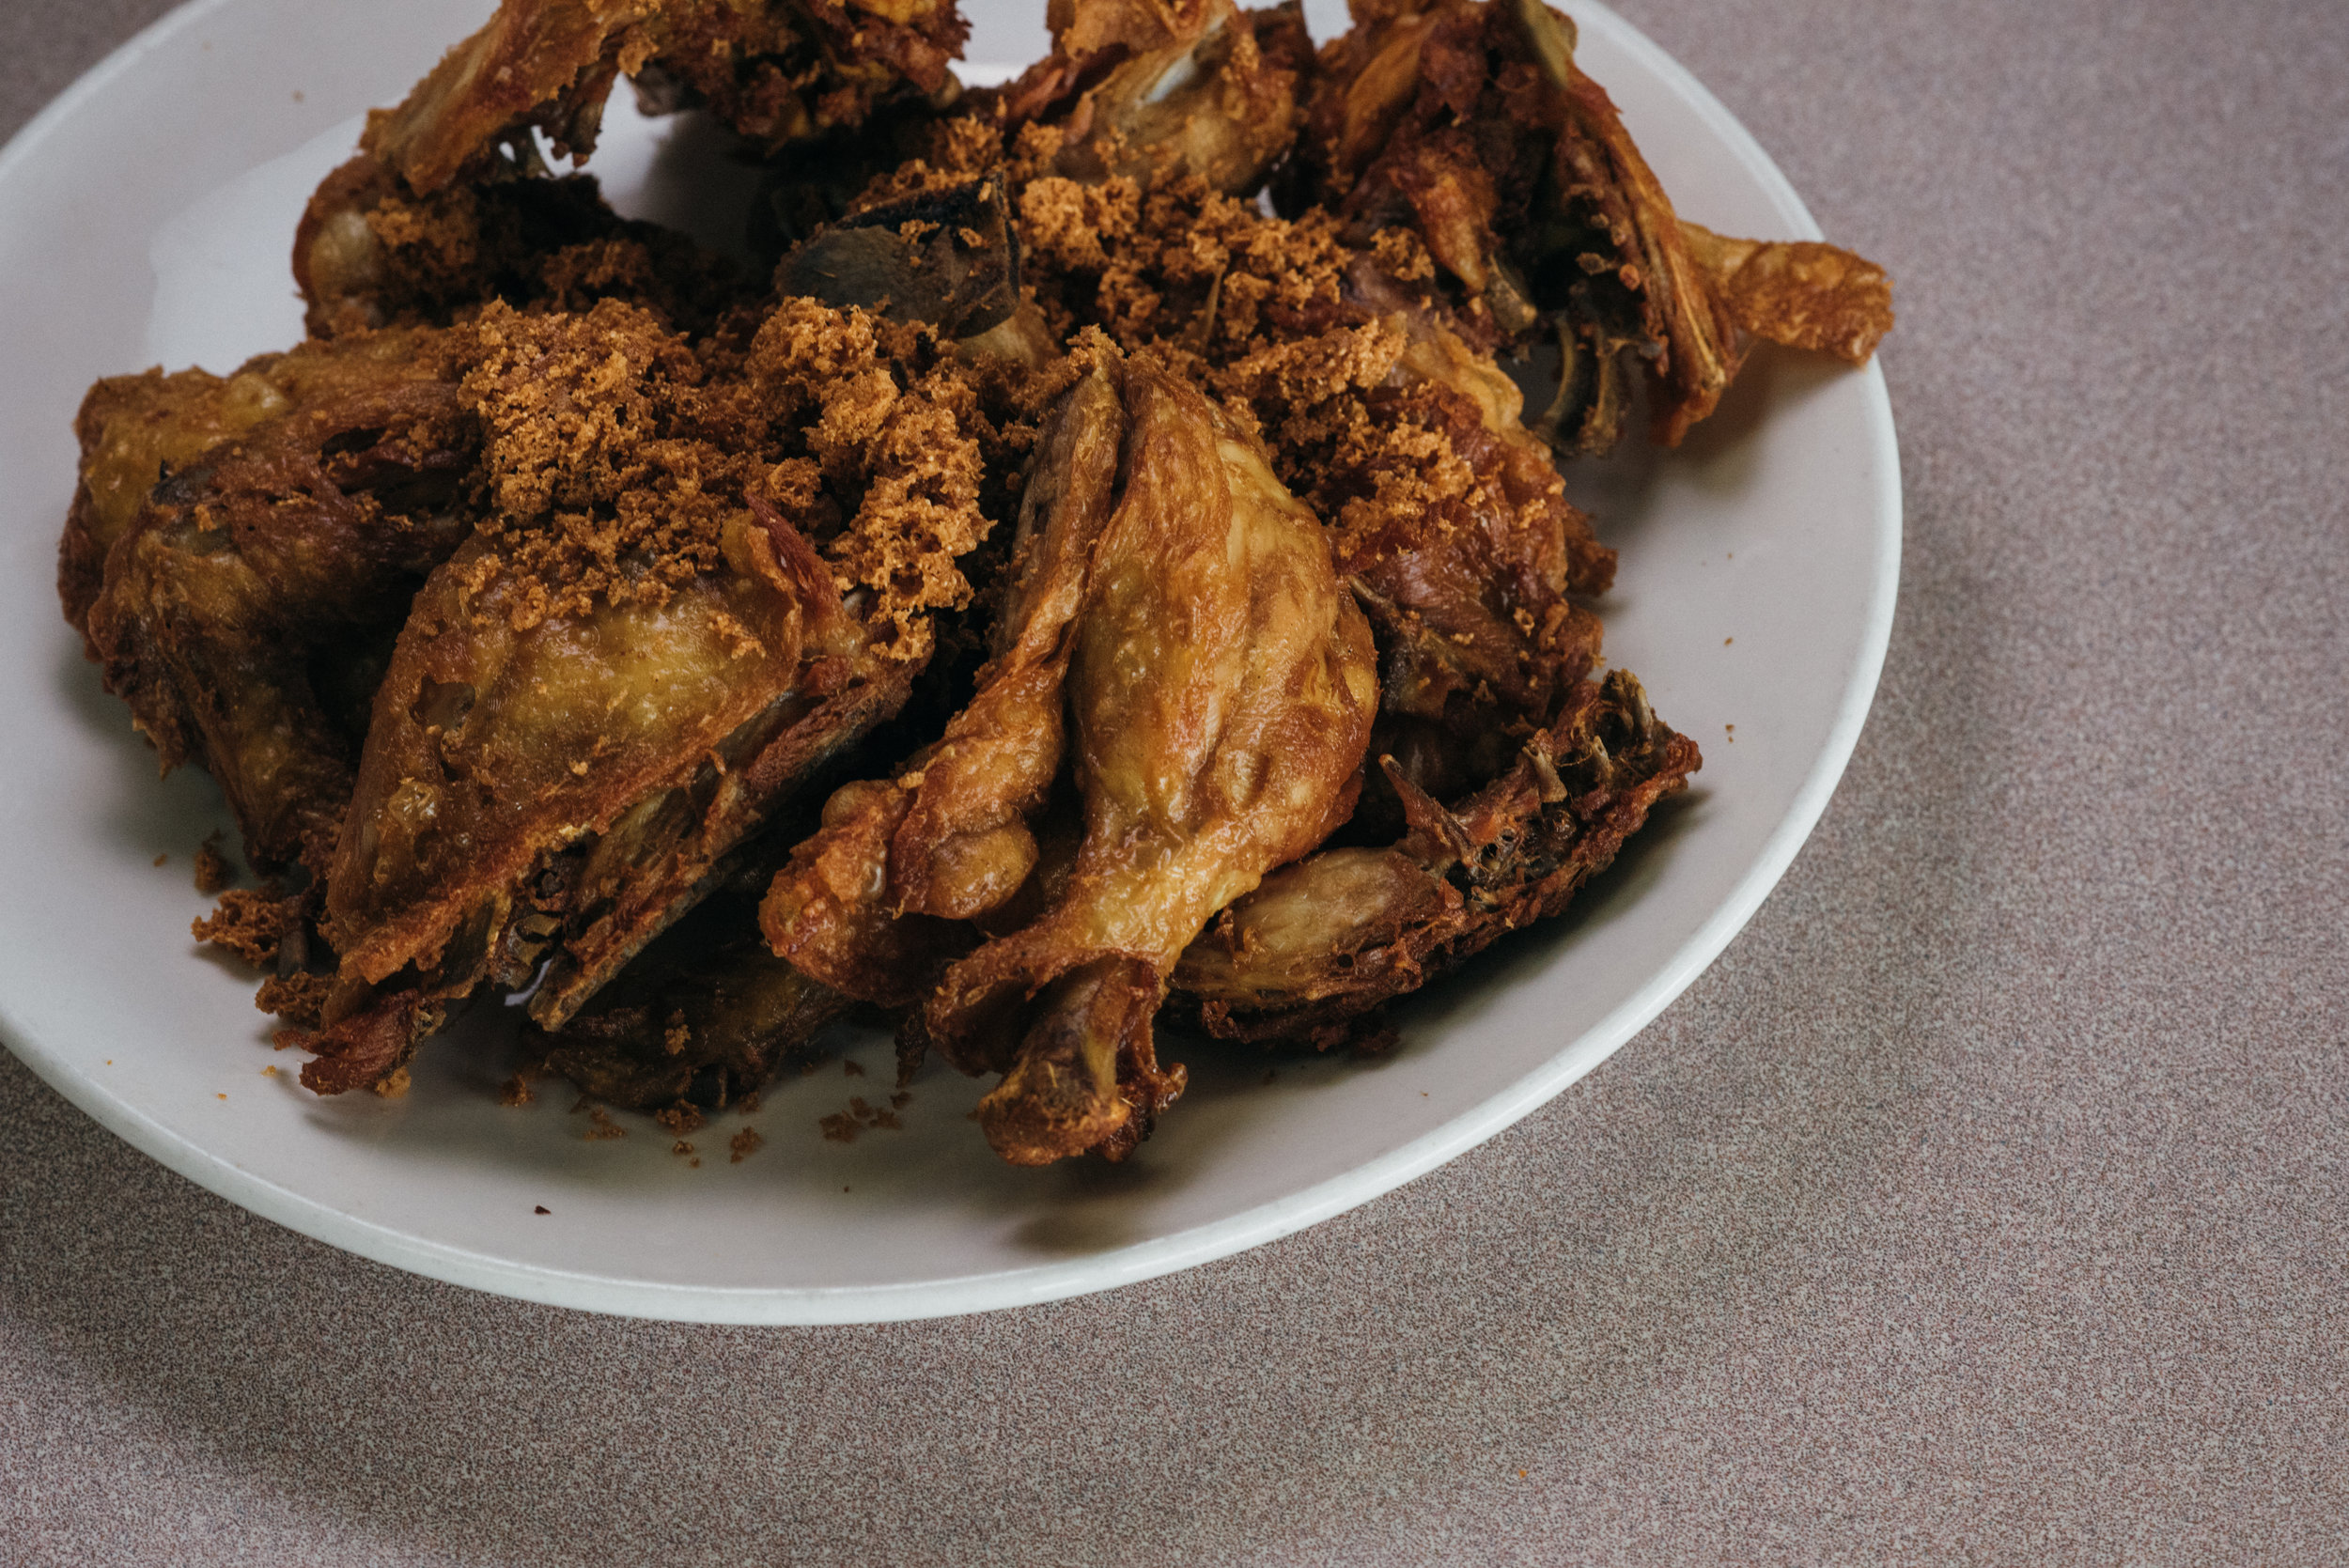 Ayam Goreng (Fried Chicken)